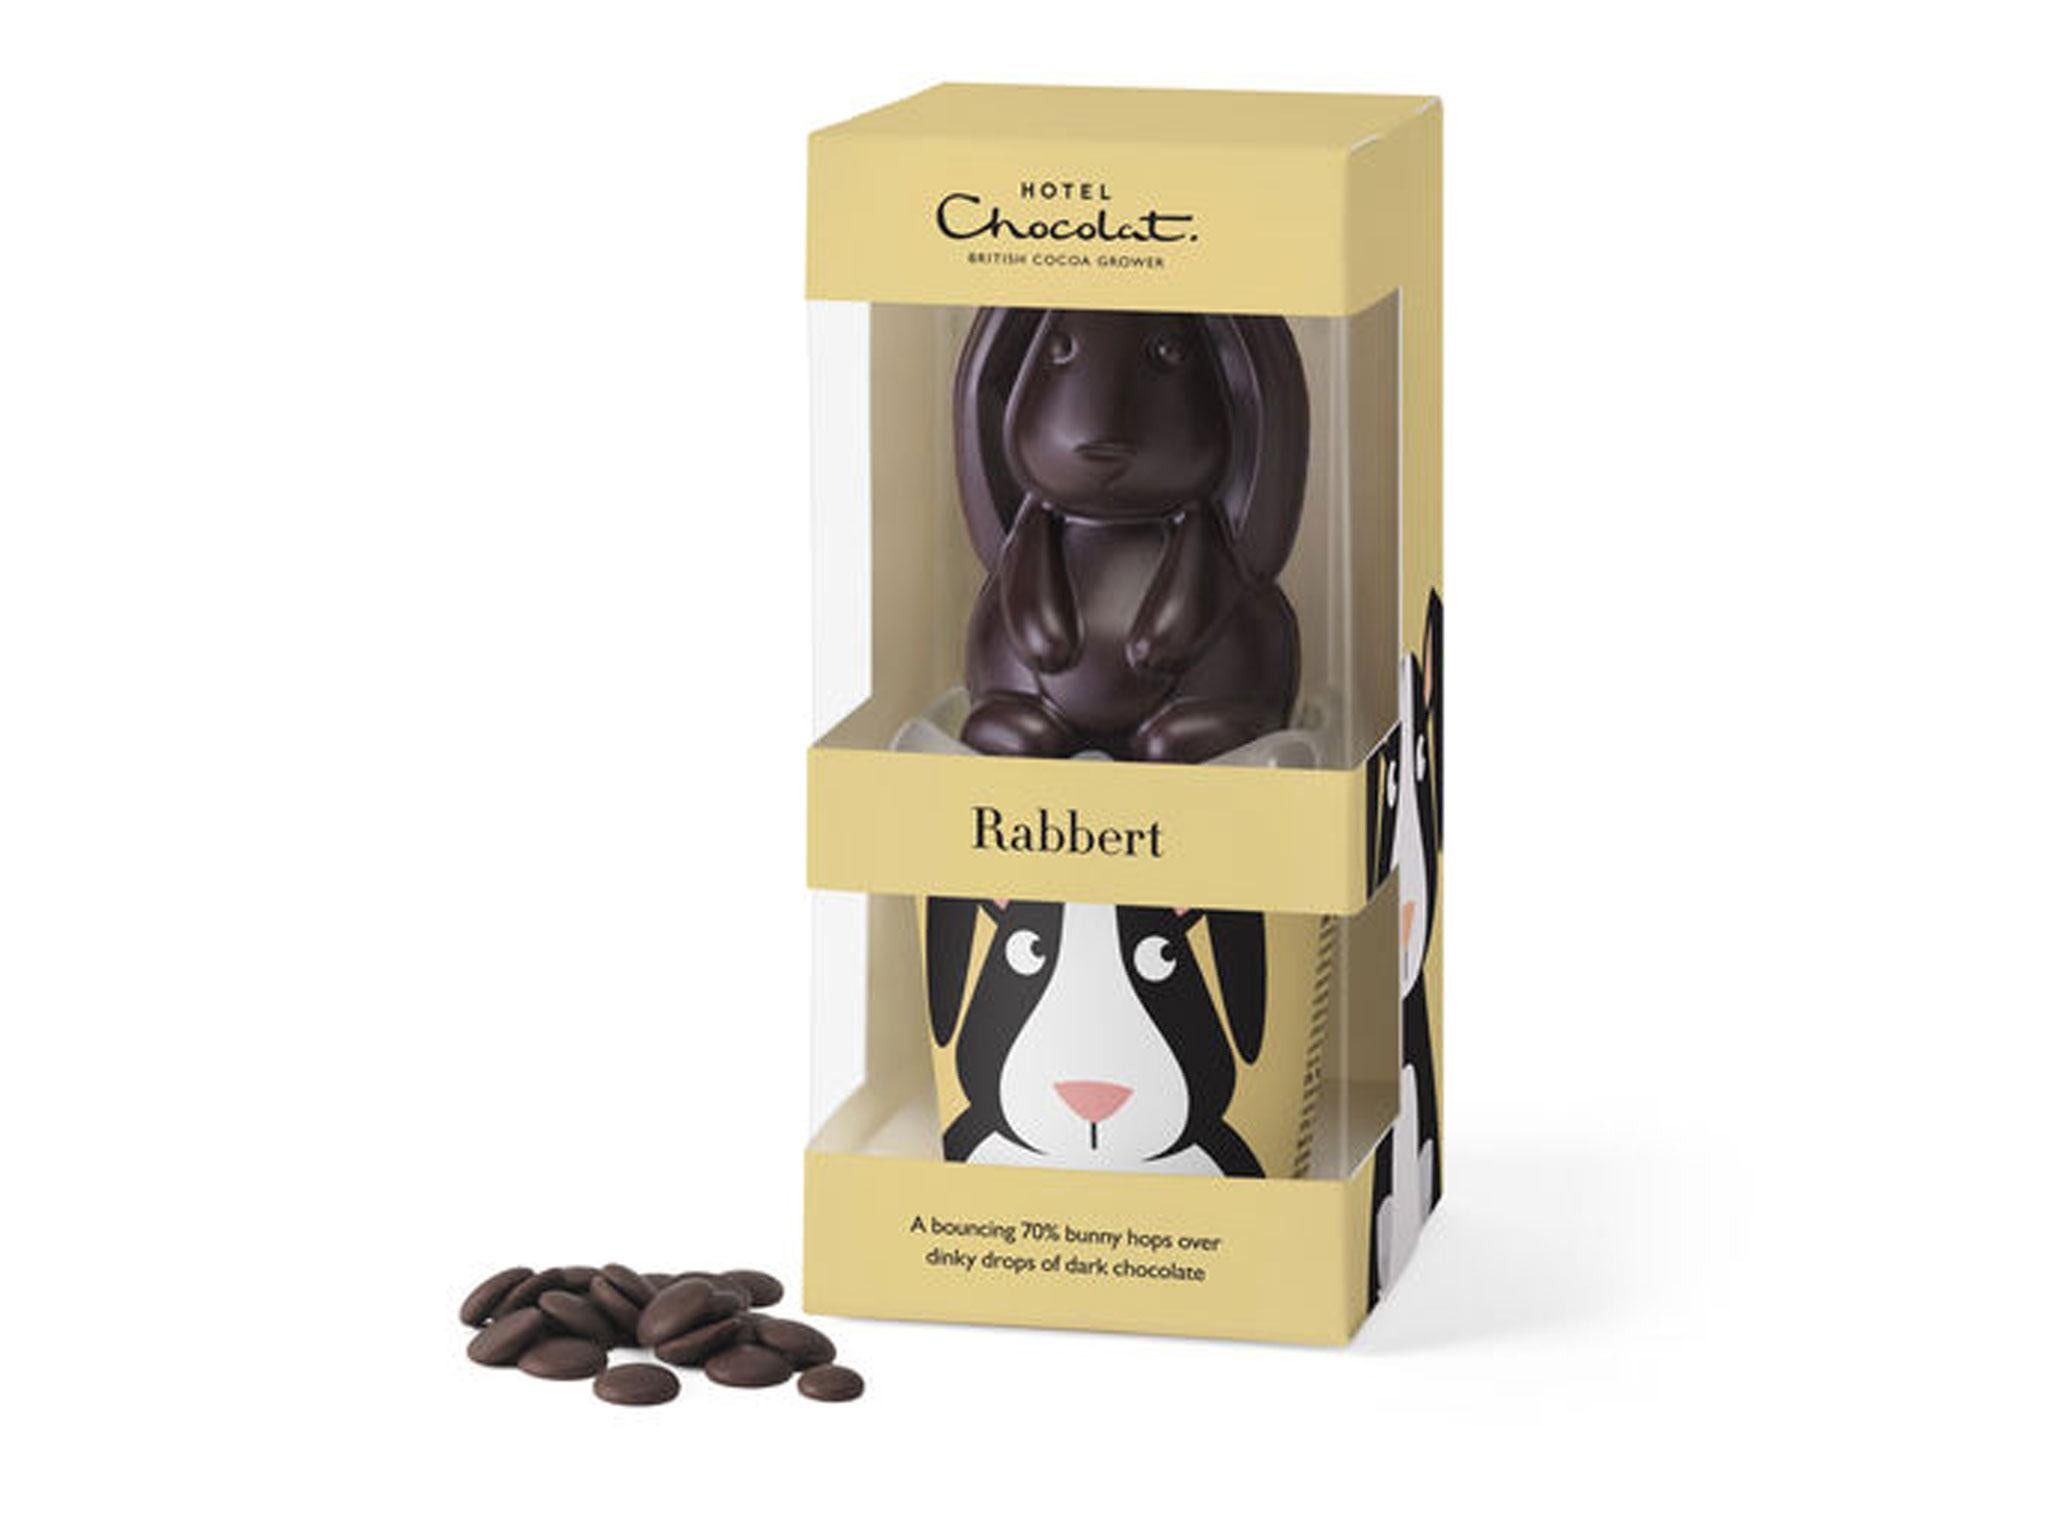 7 best vegan and dairy free easter eggs 2018 the independent hotel chocolat rabbert 650 hotel chocolat negle